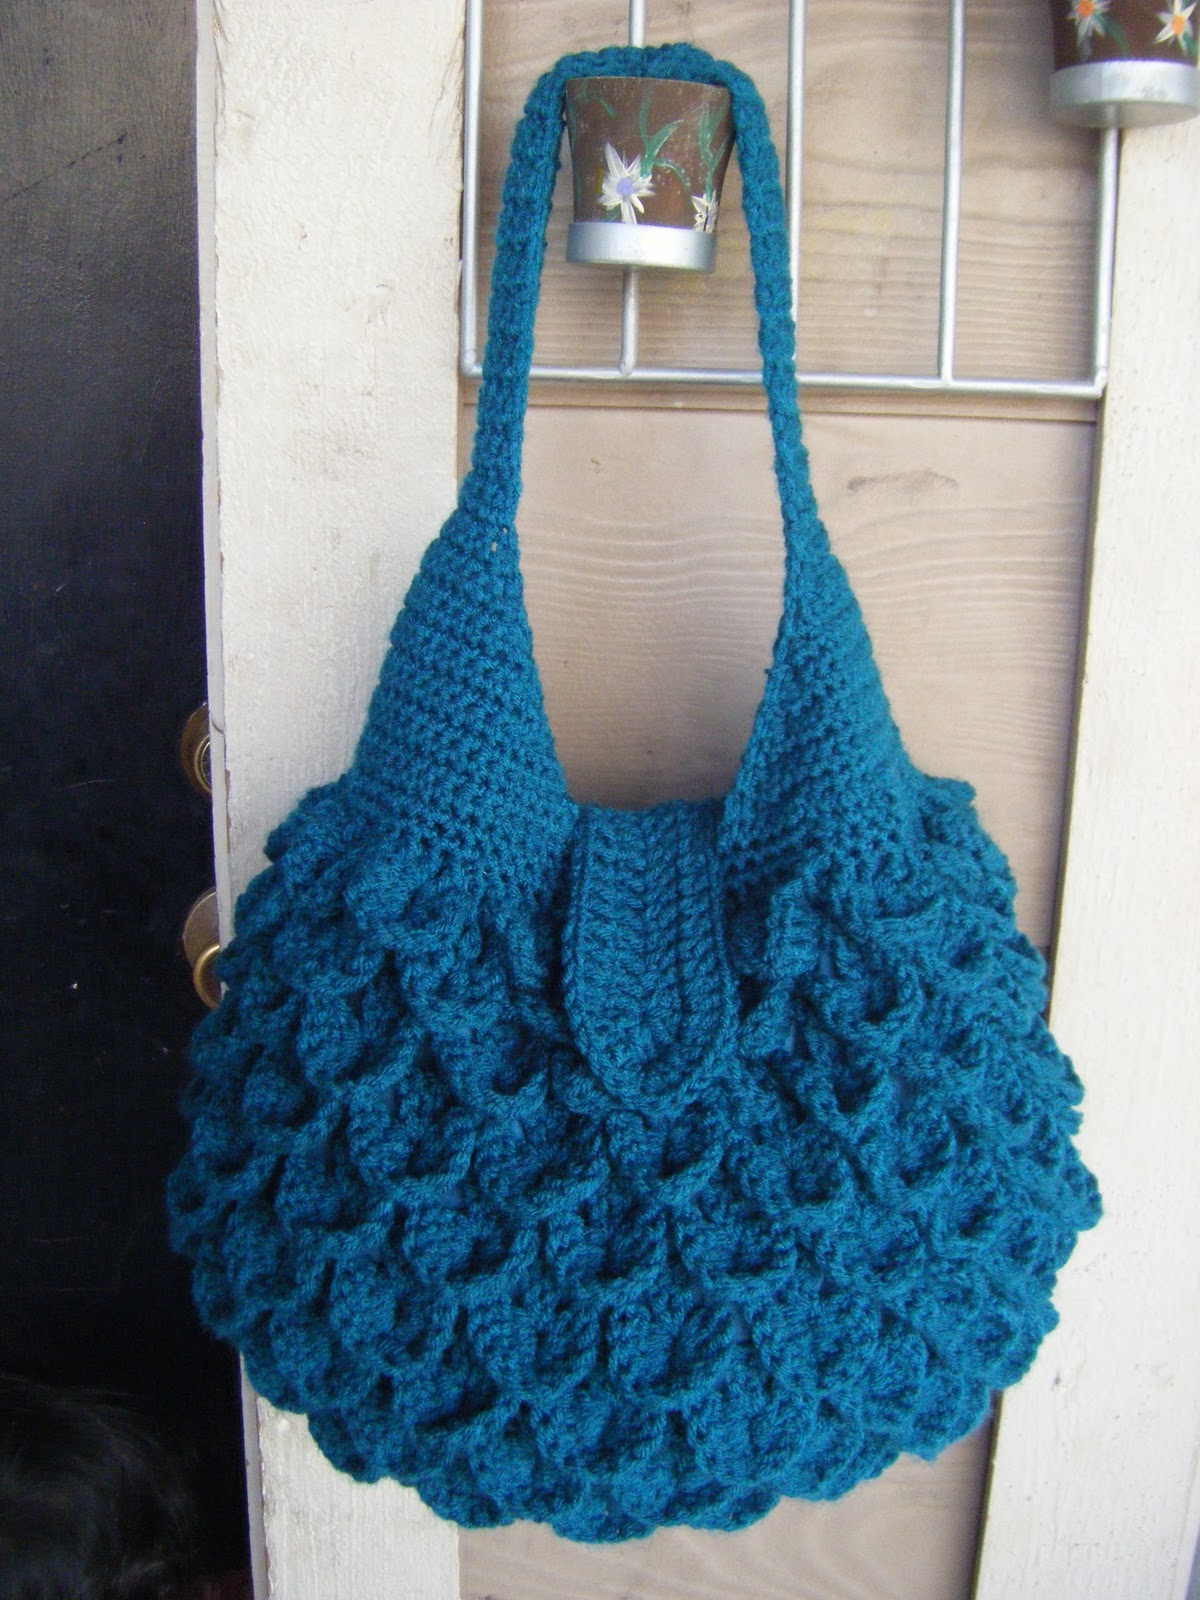 Purse Patterns Free : Free Purse Crochet Patterns, Free Bag Crochet Patterns from our